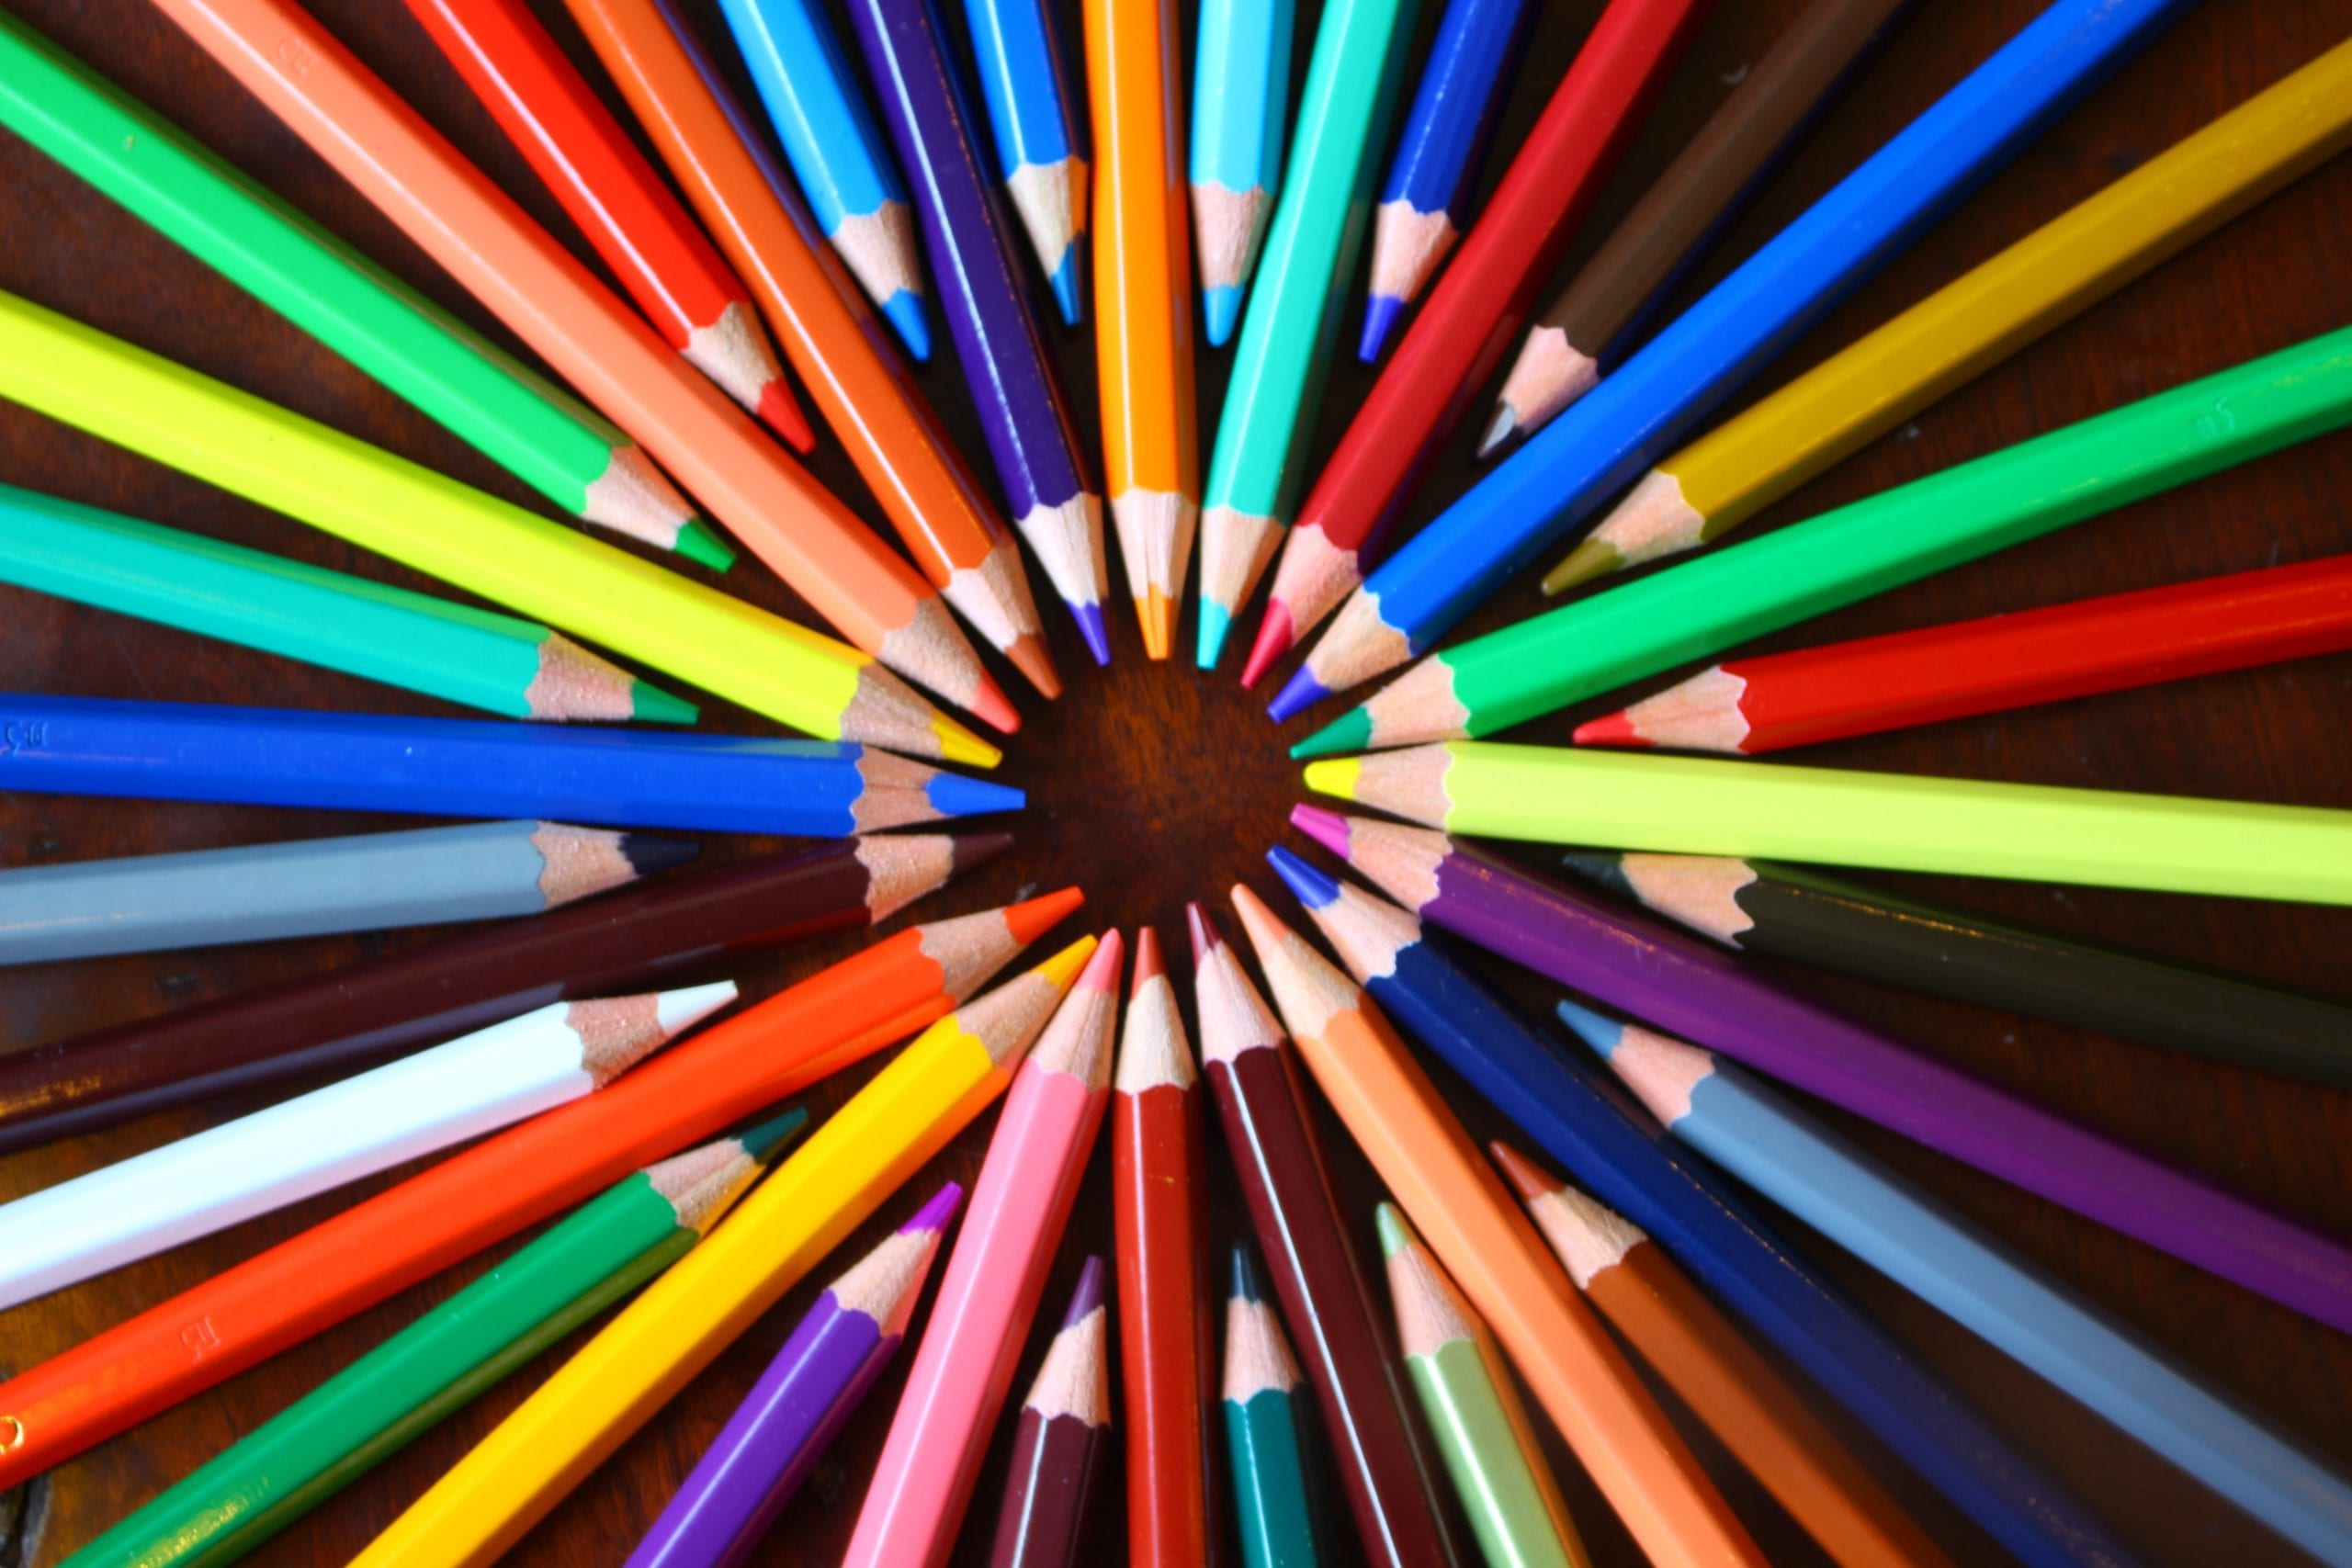 assortment of colored pencils - marketing department blog hero image